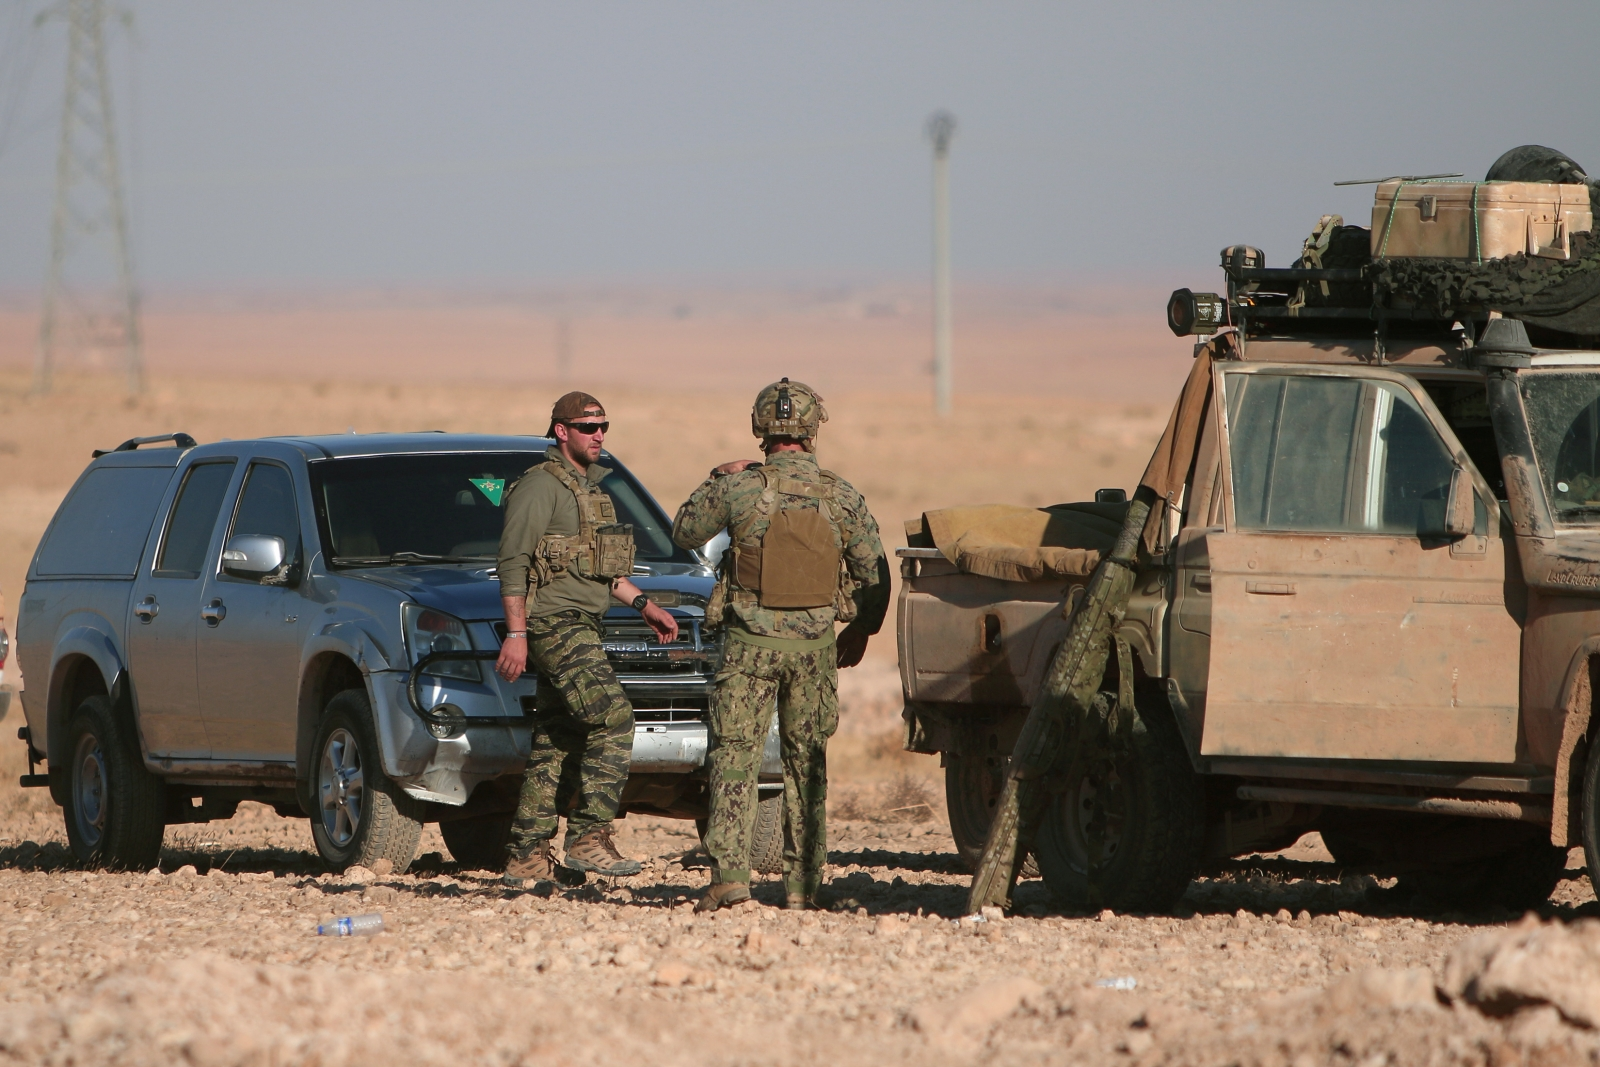 U.S. fighters stand near military vehicles